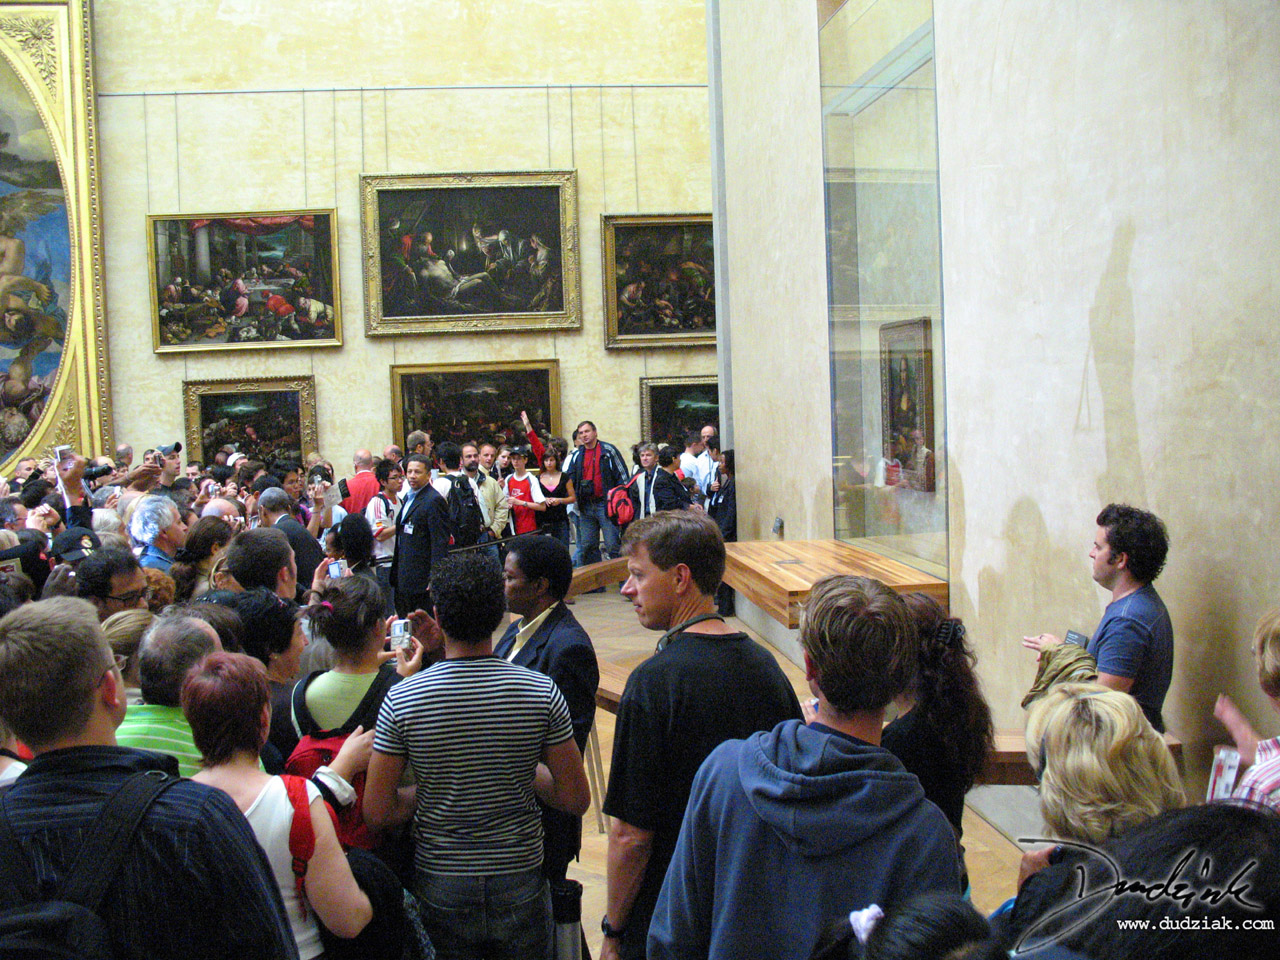 Mona Lisa,  Musee du Louvre,  Louvre Museum,  da Vinci,  France,  crowd,  Paris